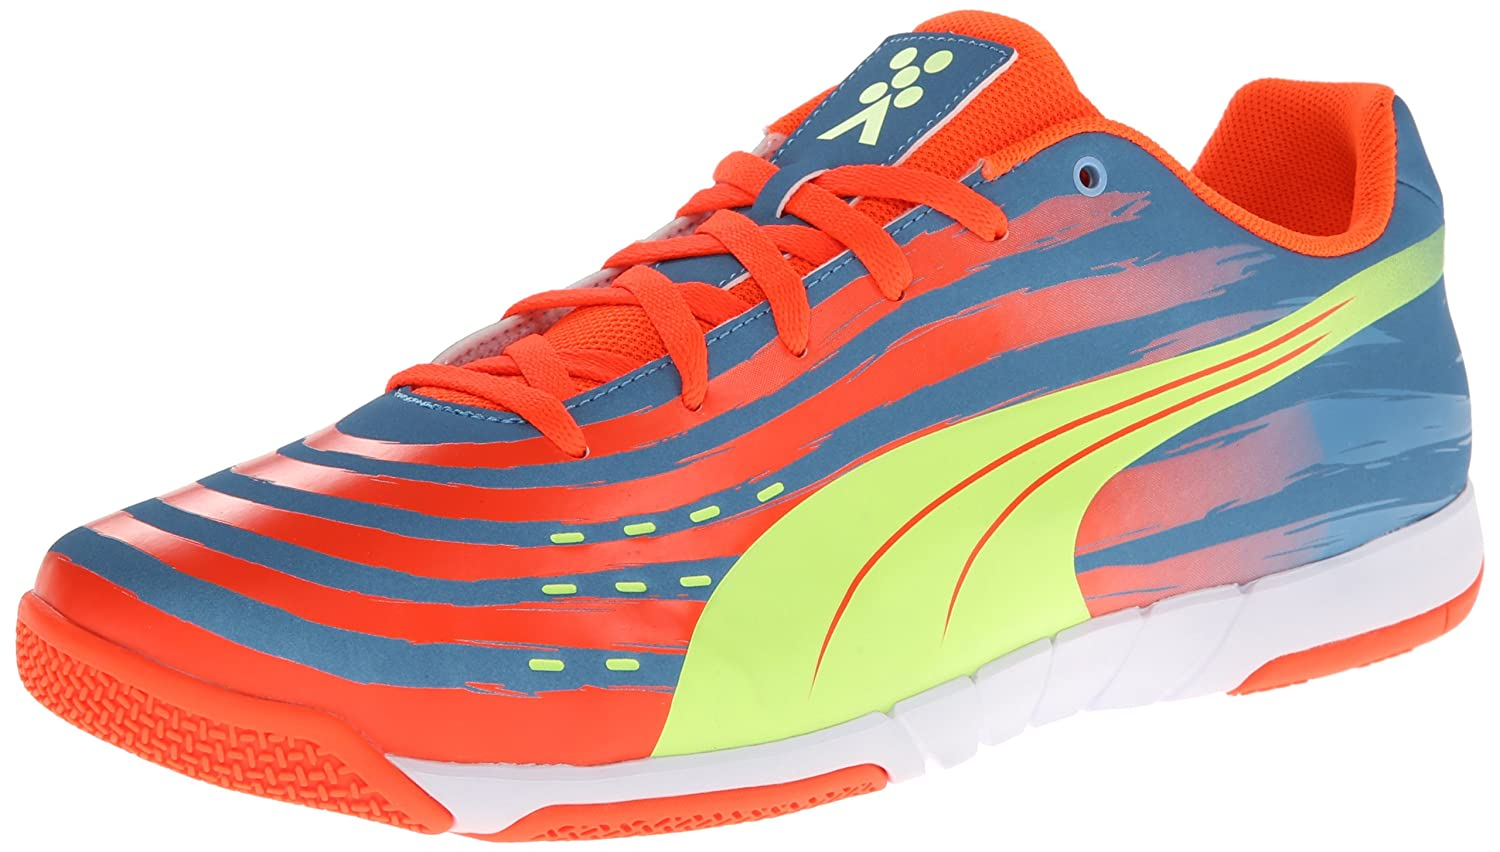 PUMA メンズ B00DOL4E5E 9 mens_us|Sharks Blue/Fluorescent Peach/Fluorescent Yellow Sharks Blue/Fluorescent Peach/Fluorescent Yellow 9 mens_us